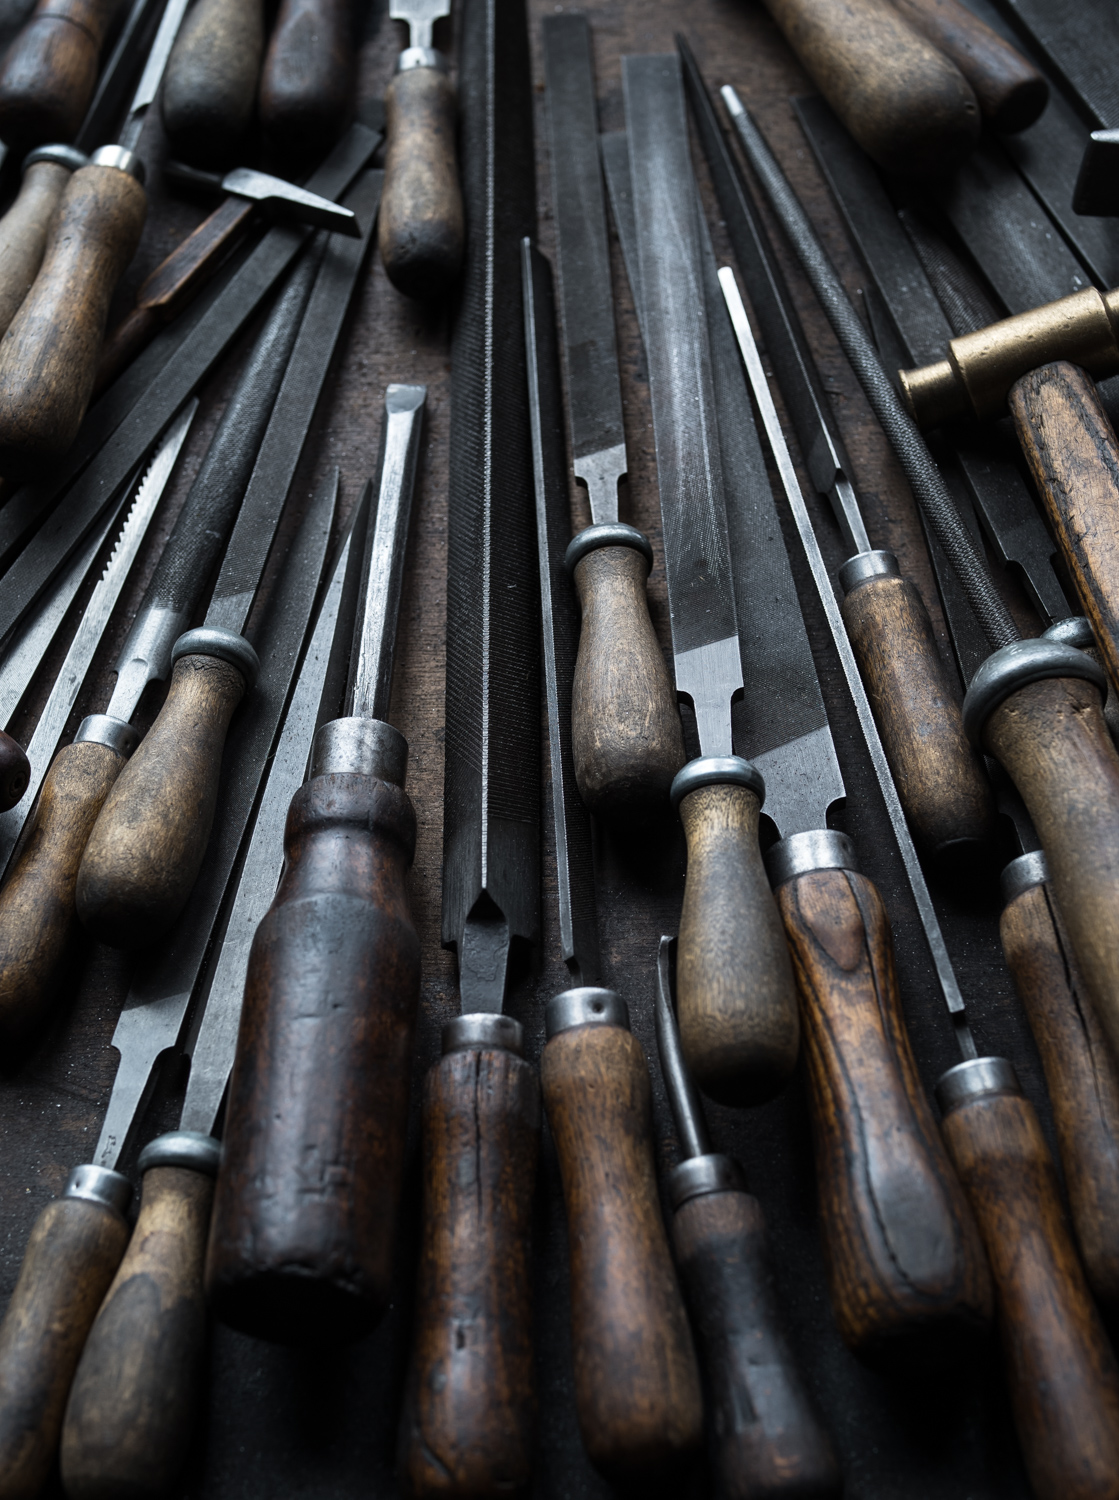 Gunmakers Files at Westley Richards